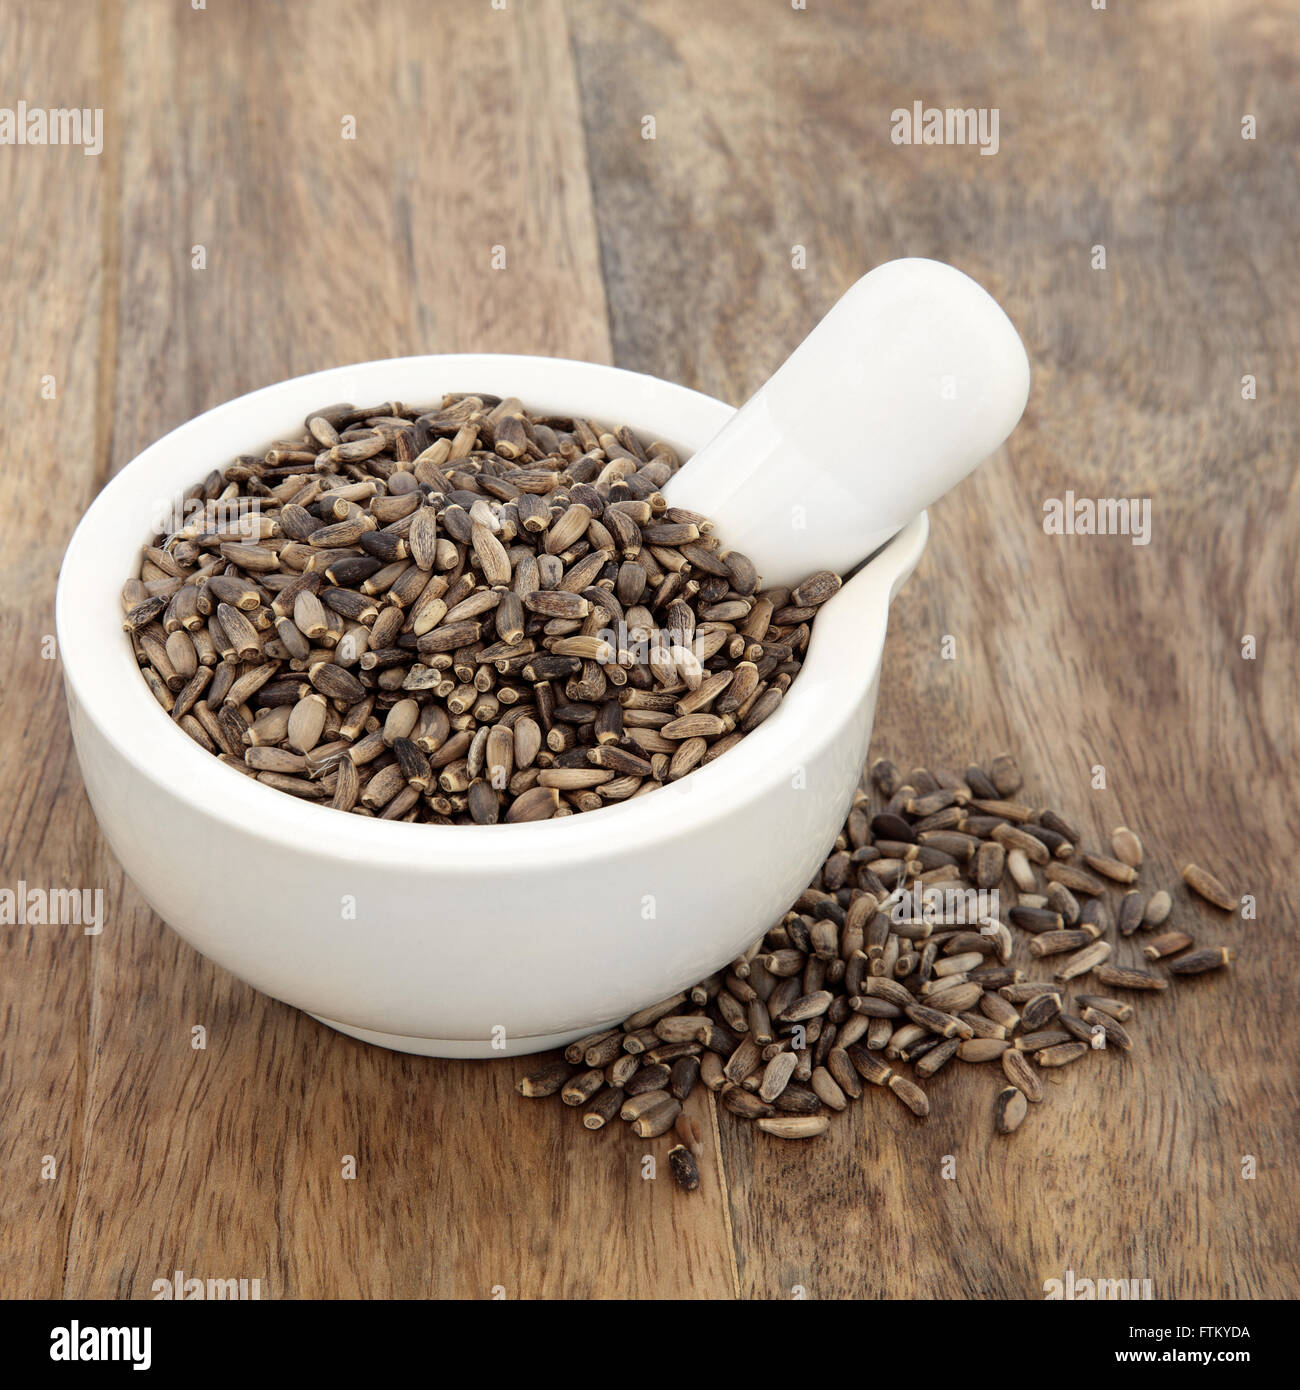 Milk thistle herb used in natural alternative herbal medicine over old wood background. - Stock Image